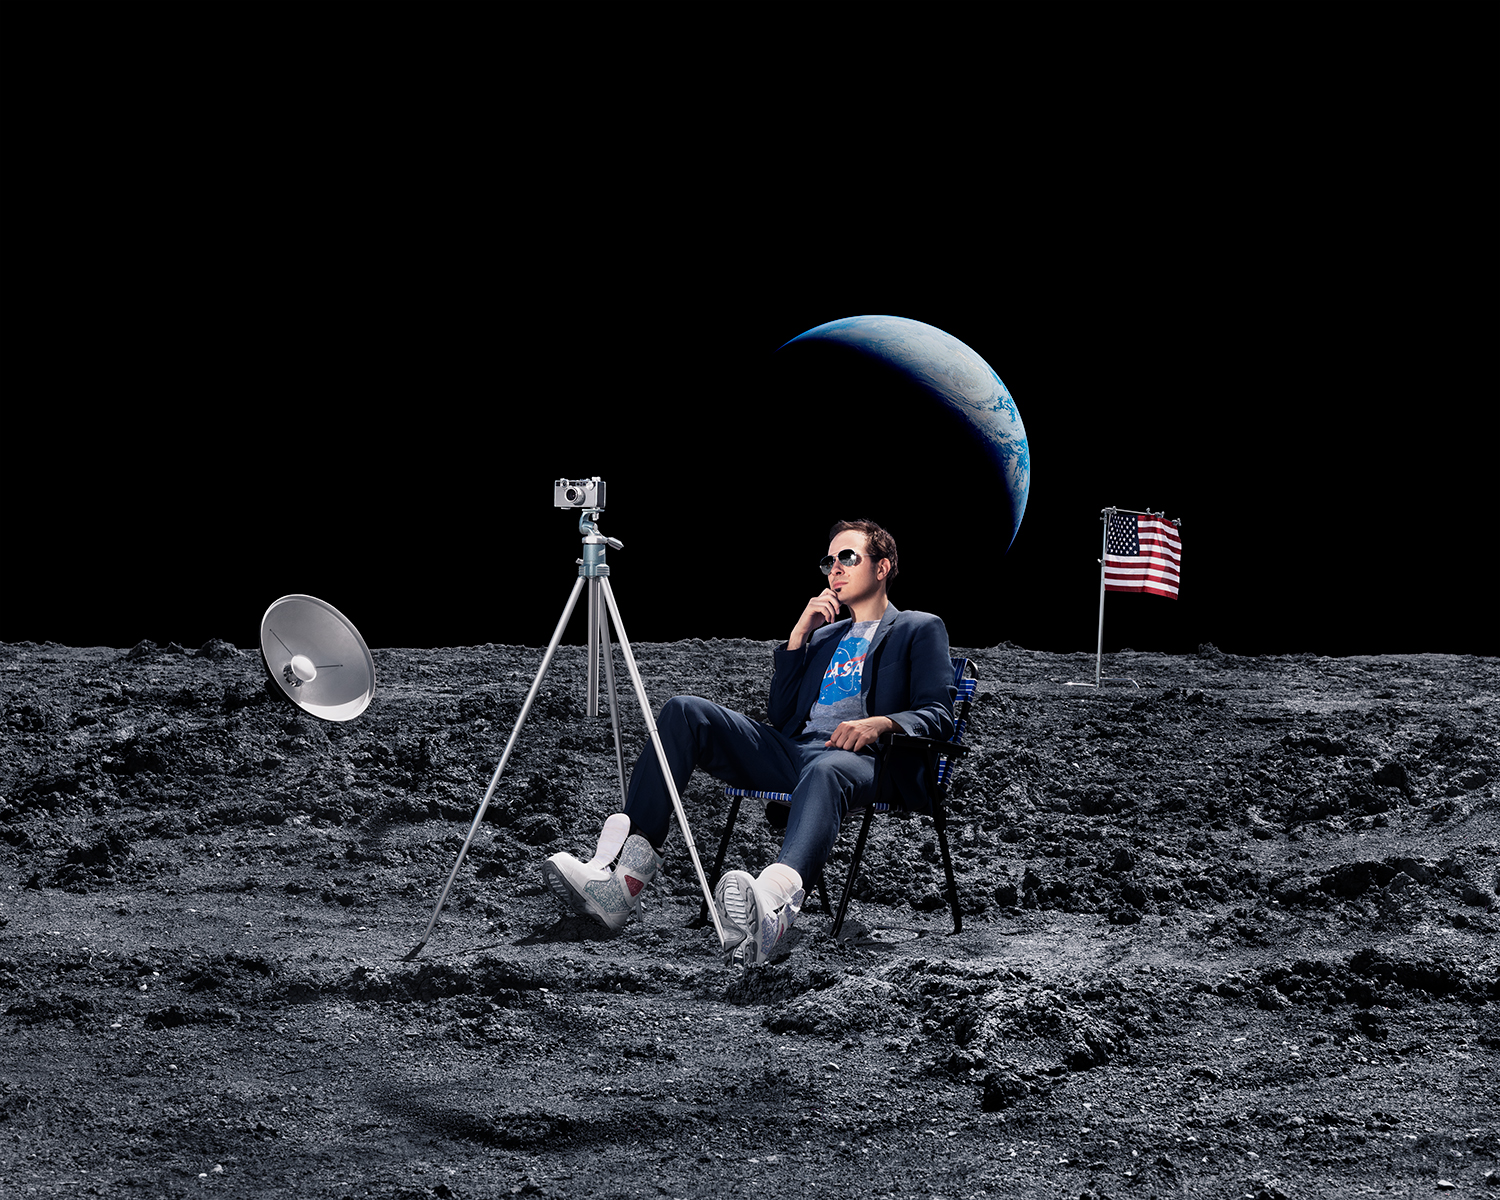 Thank you for checking out my moonlanding promo